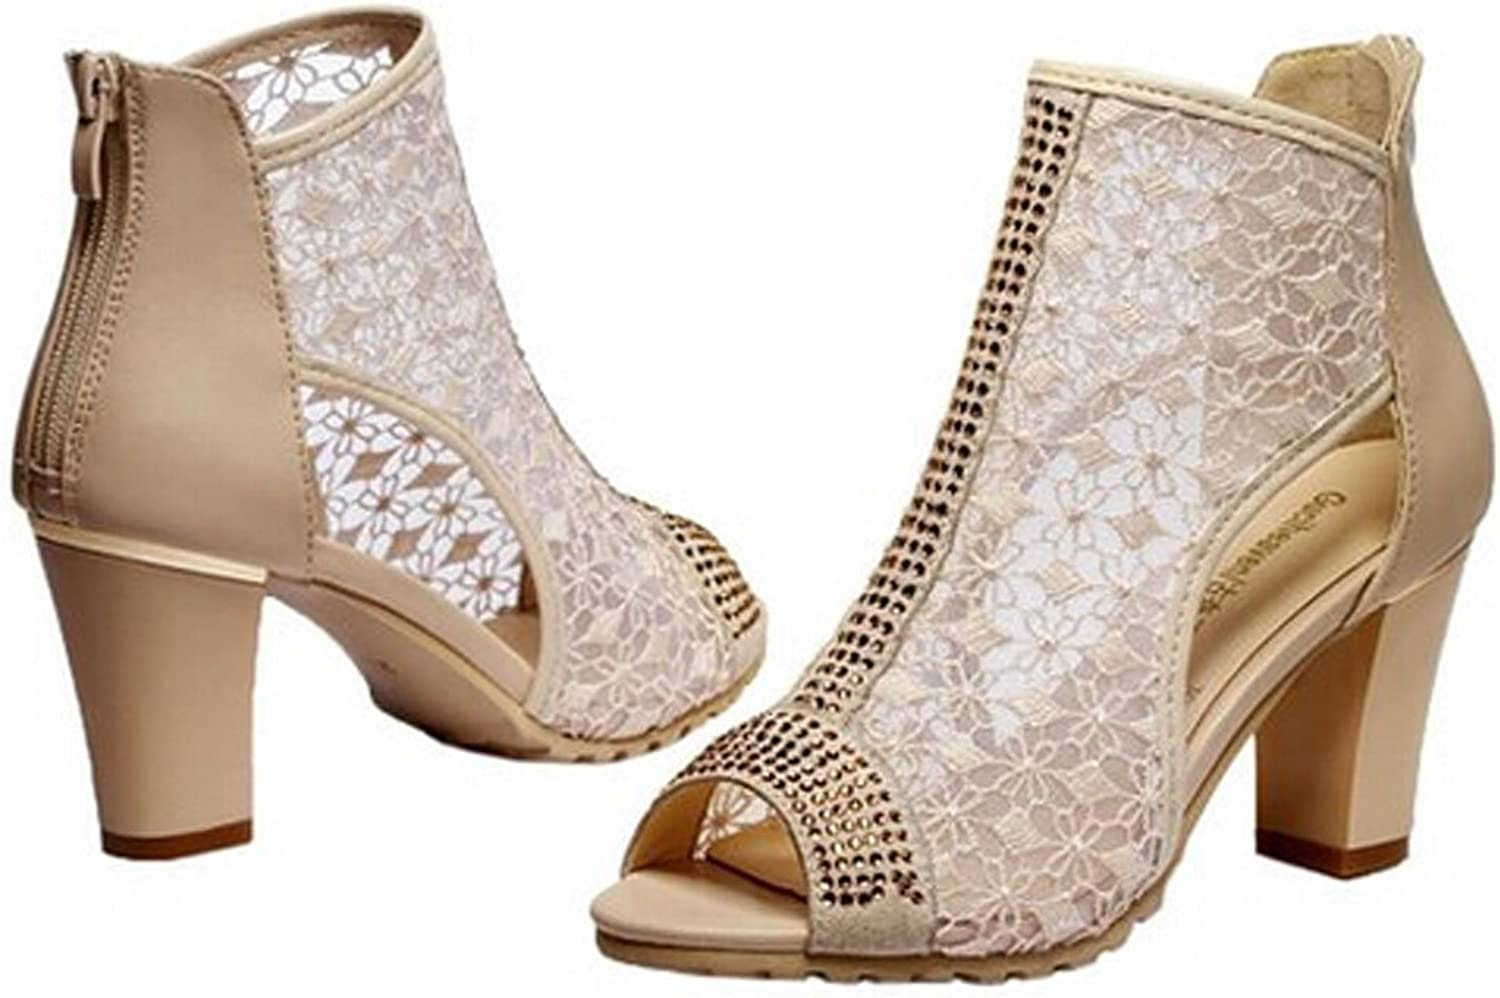 San hojas Women Beautiful Peep Toe Thick High-Heeled Mesh Pump Boots Beige